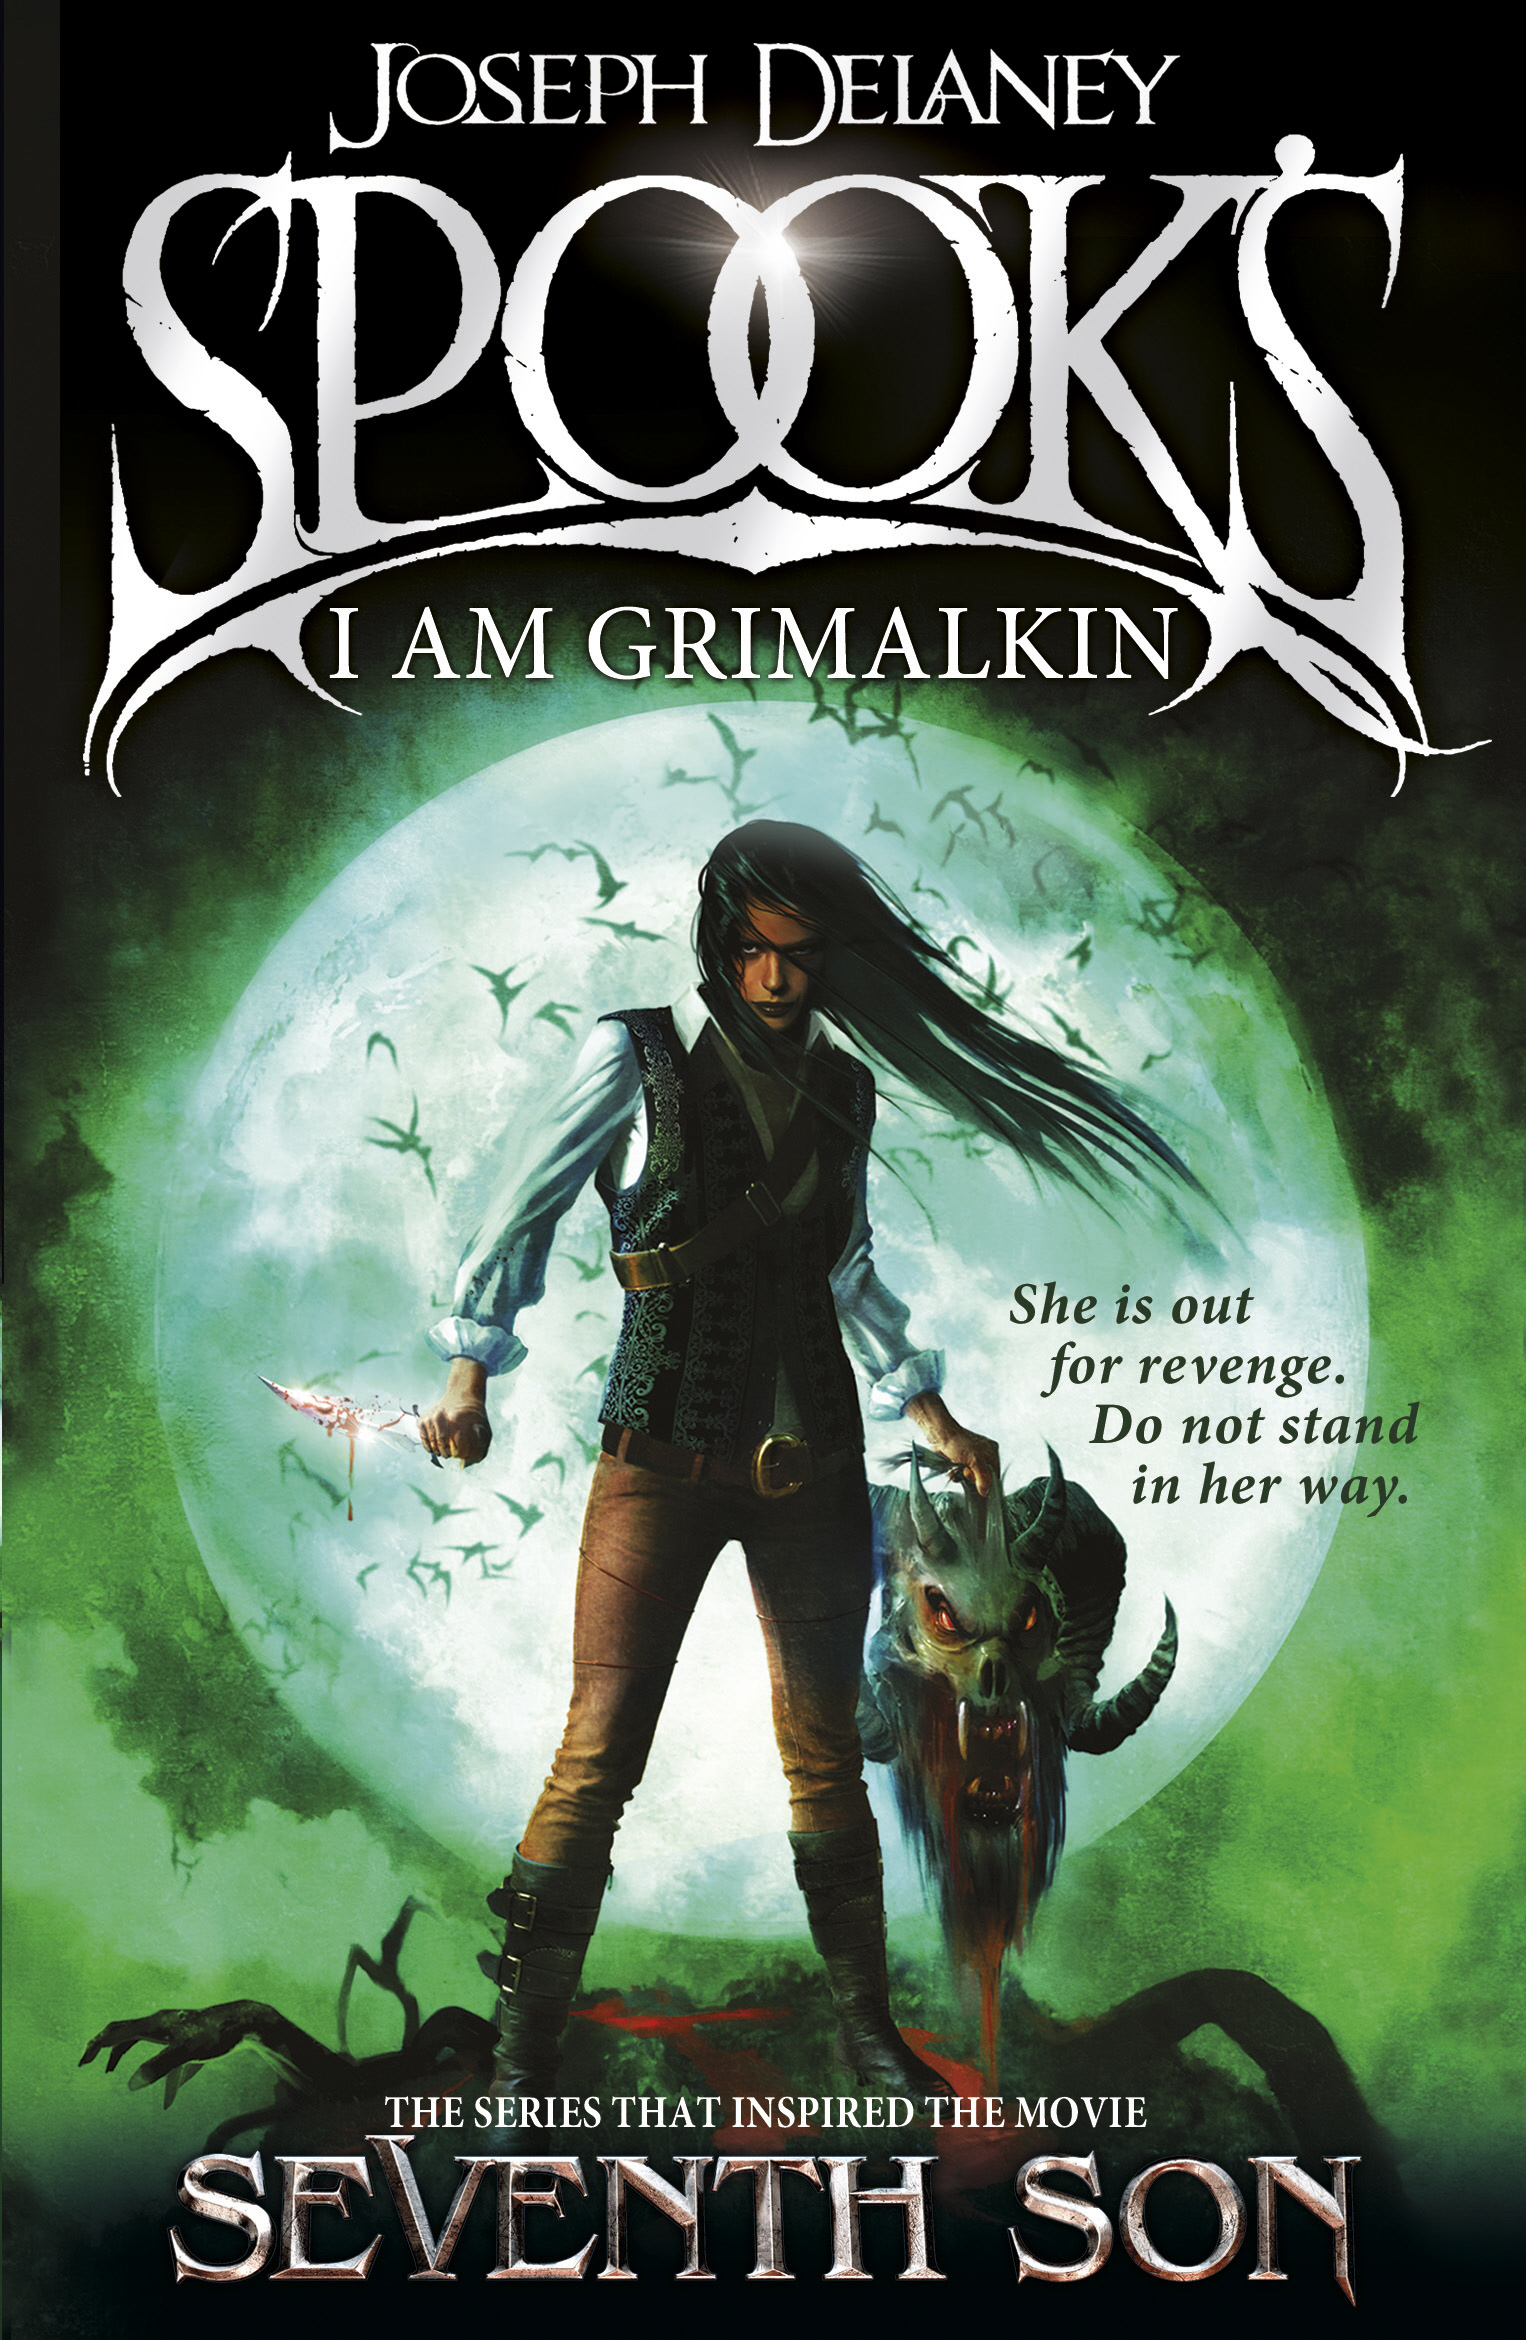 Spook's: I Am Grimalkin Book 9